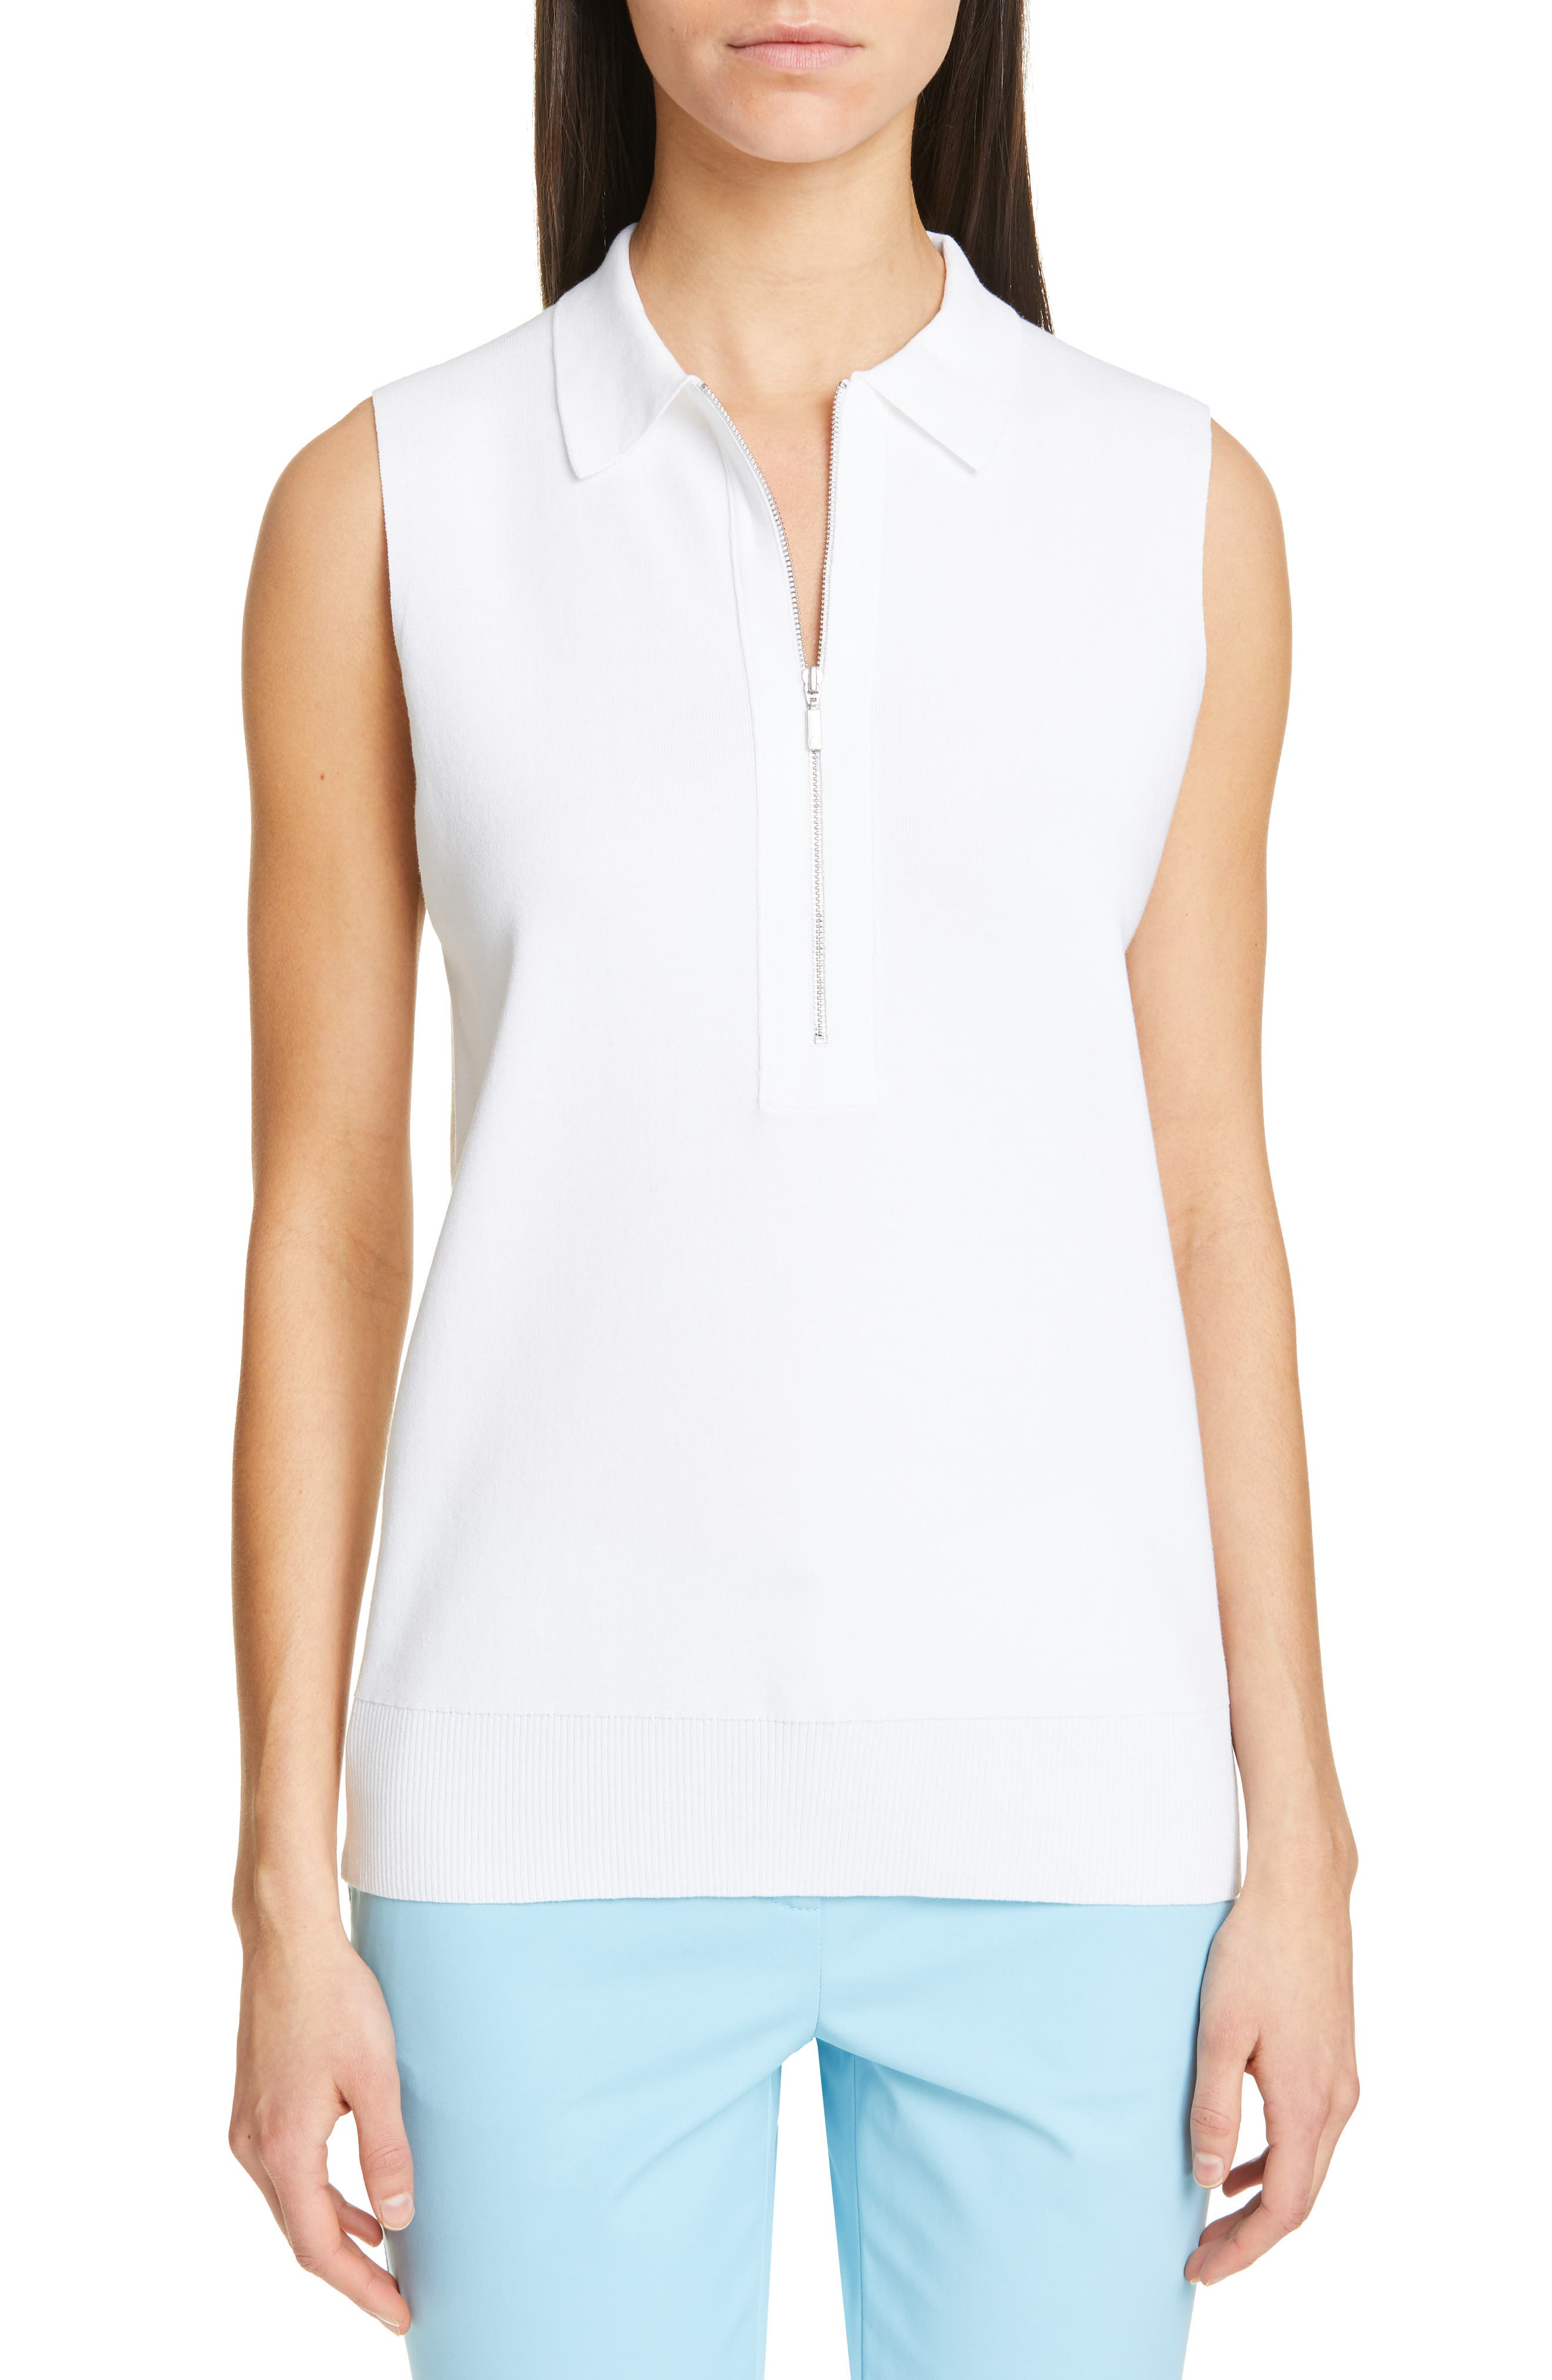 LAFAYETTE 148 NEW YORK, Lafayette Fitted Sleeveless Polo Sweater, Main thumbnail 1, color, WHITE